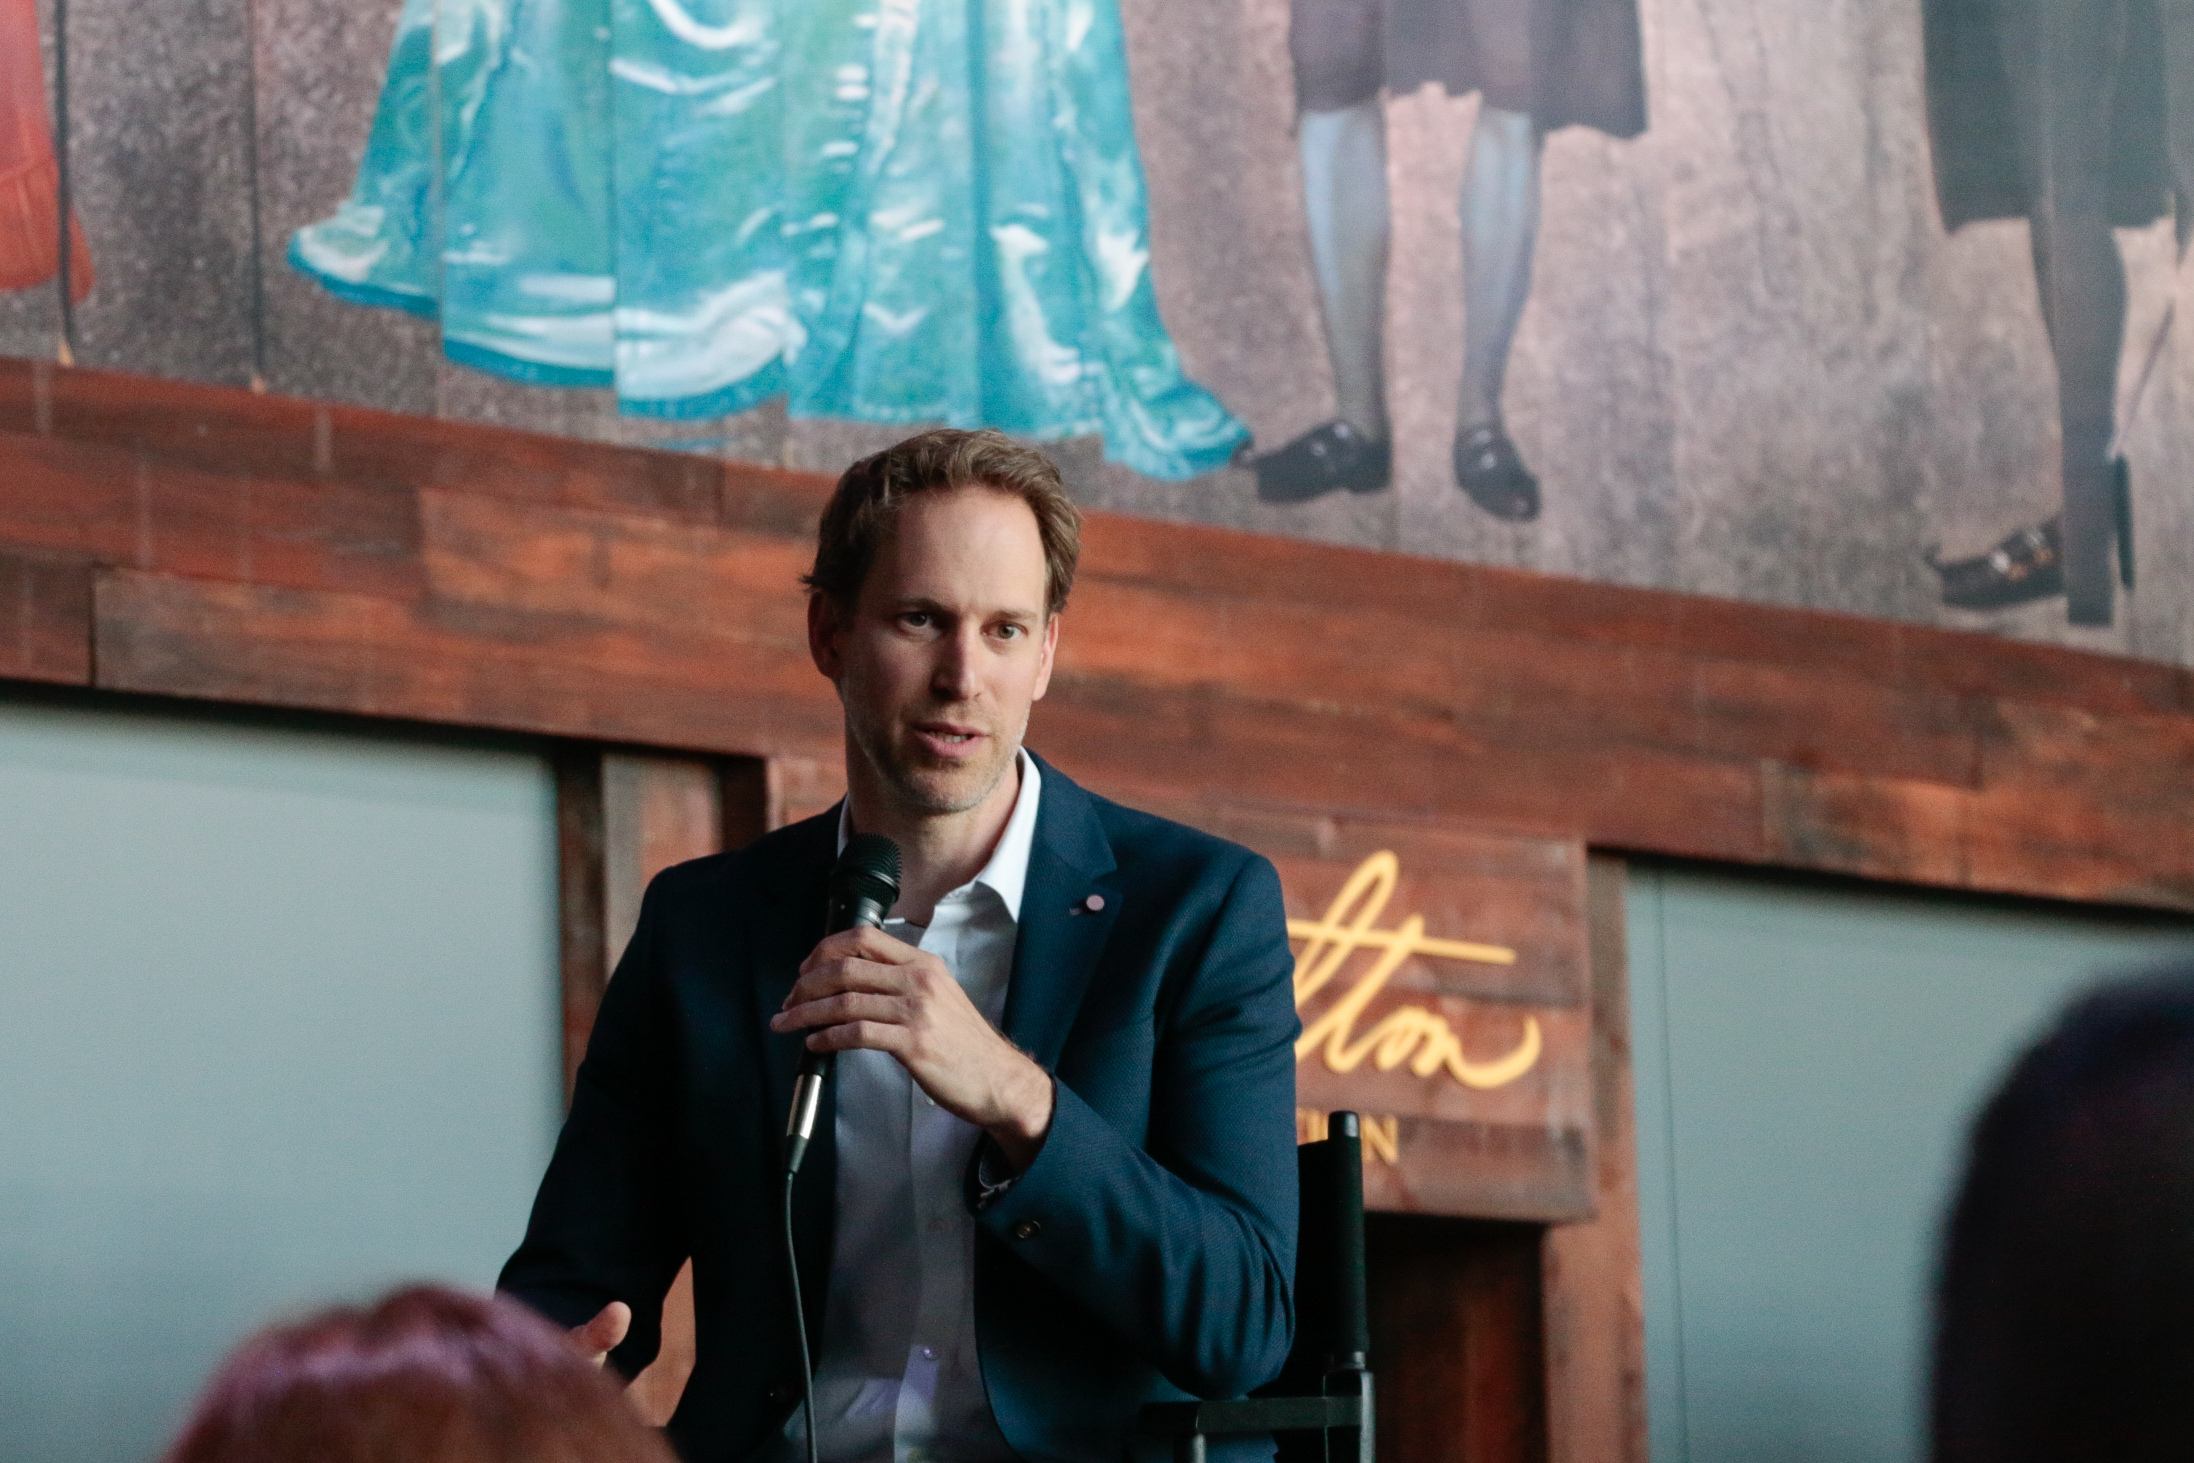 David Korins at the Hamilton Exhibition Press Conference, April 26th, 2019. Photo by Mary Crylen.